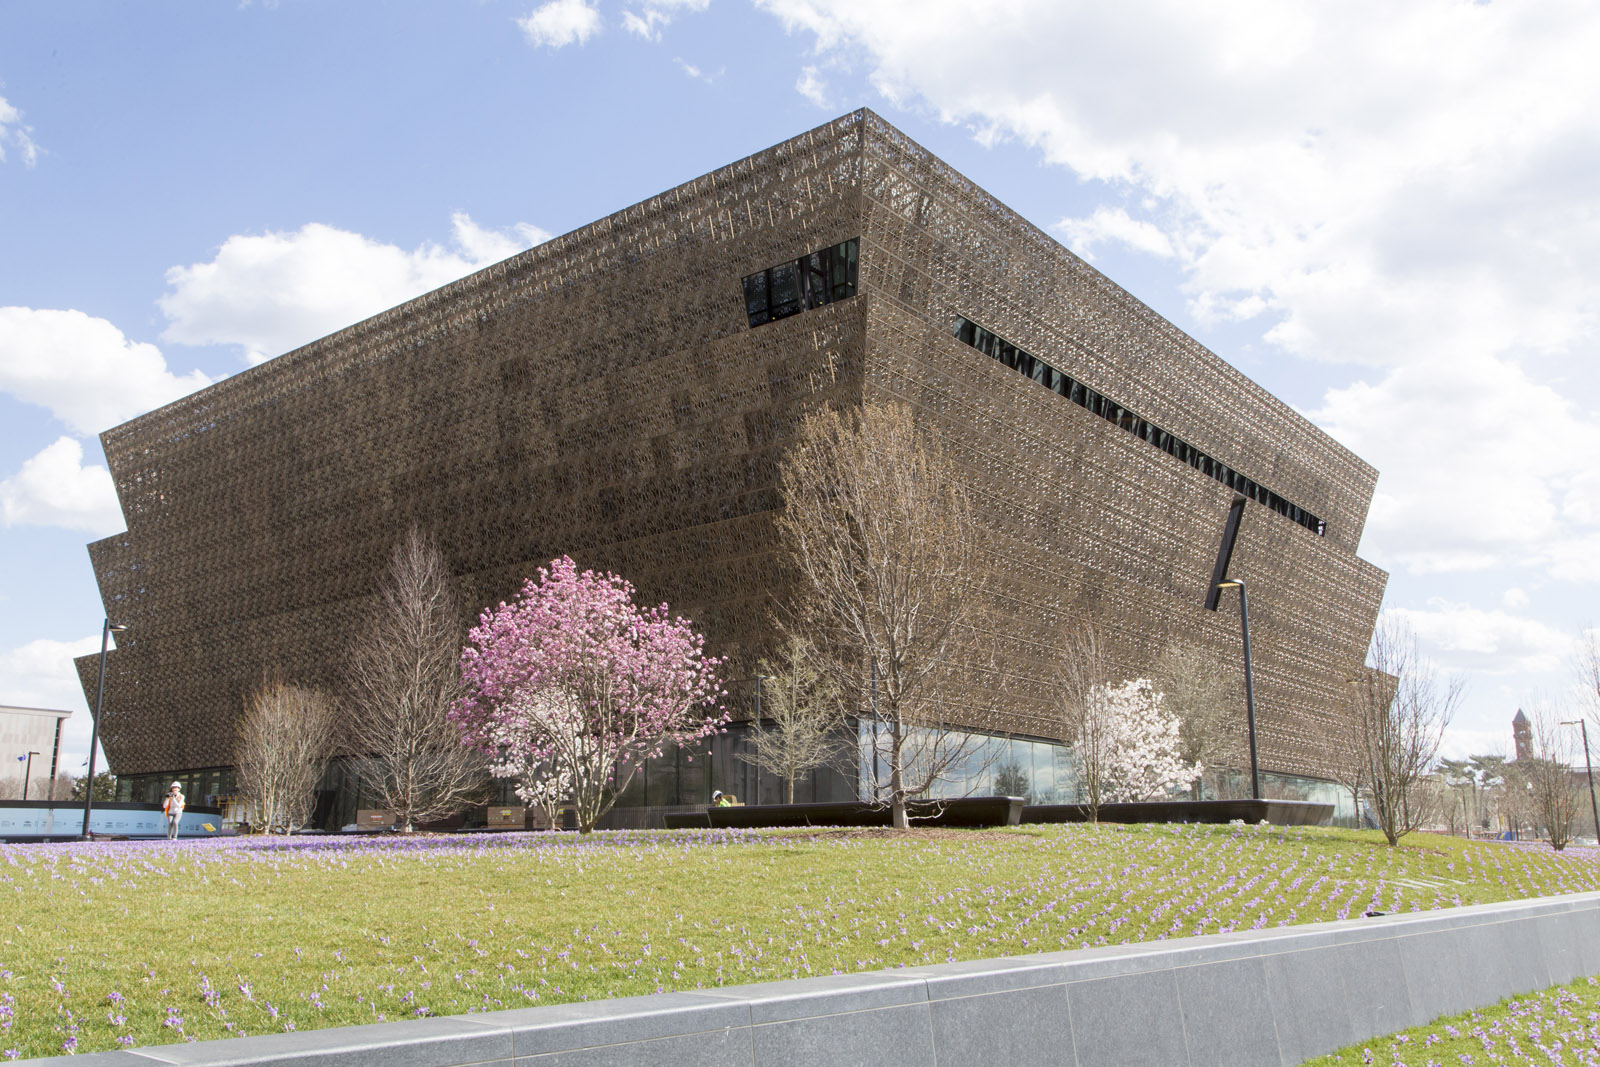 Microsoft donates $1M to Museum of African American History